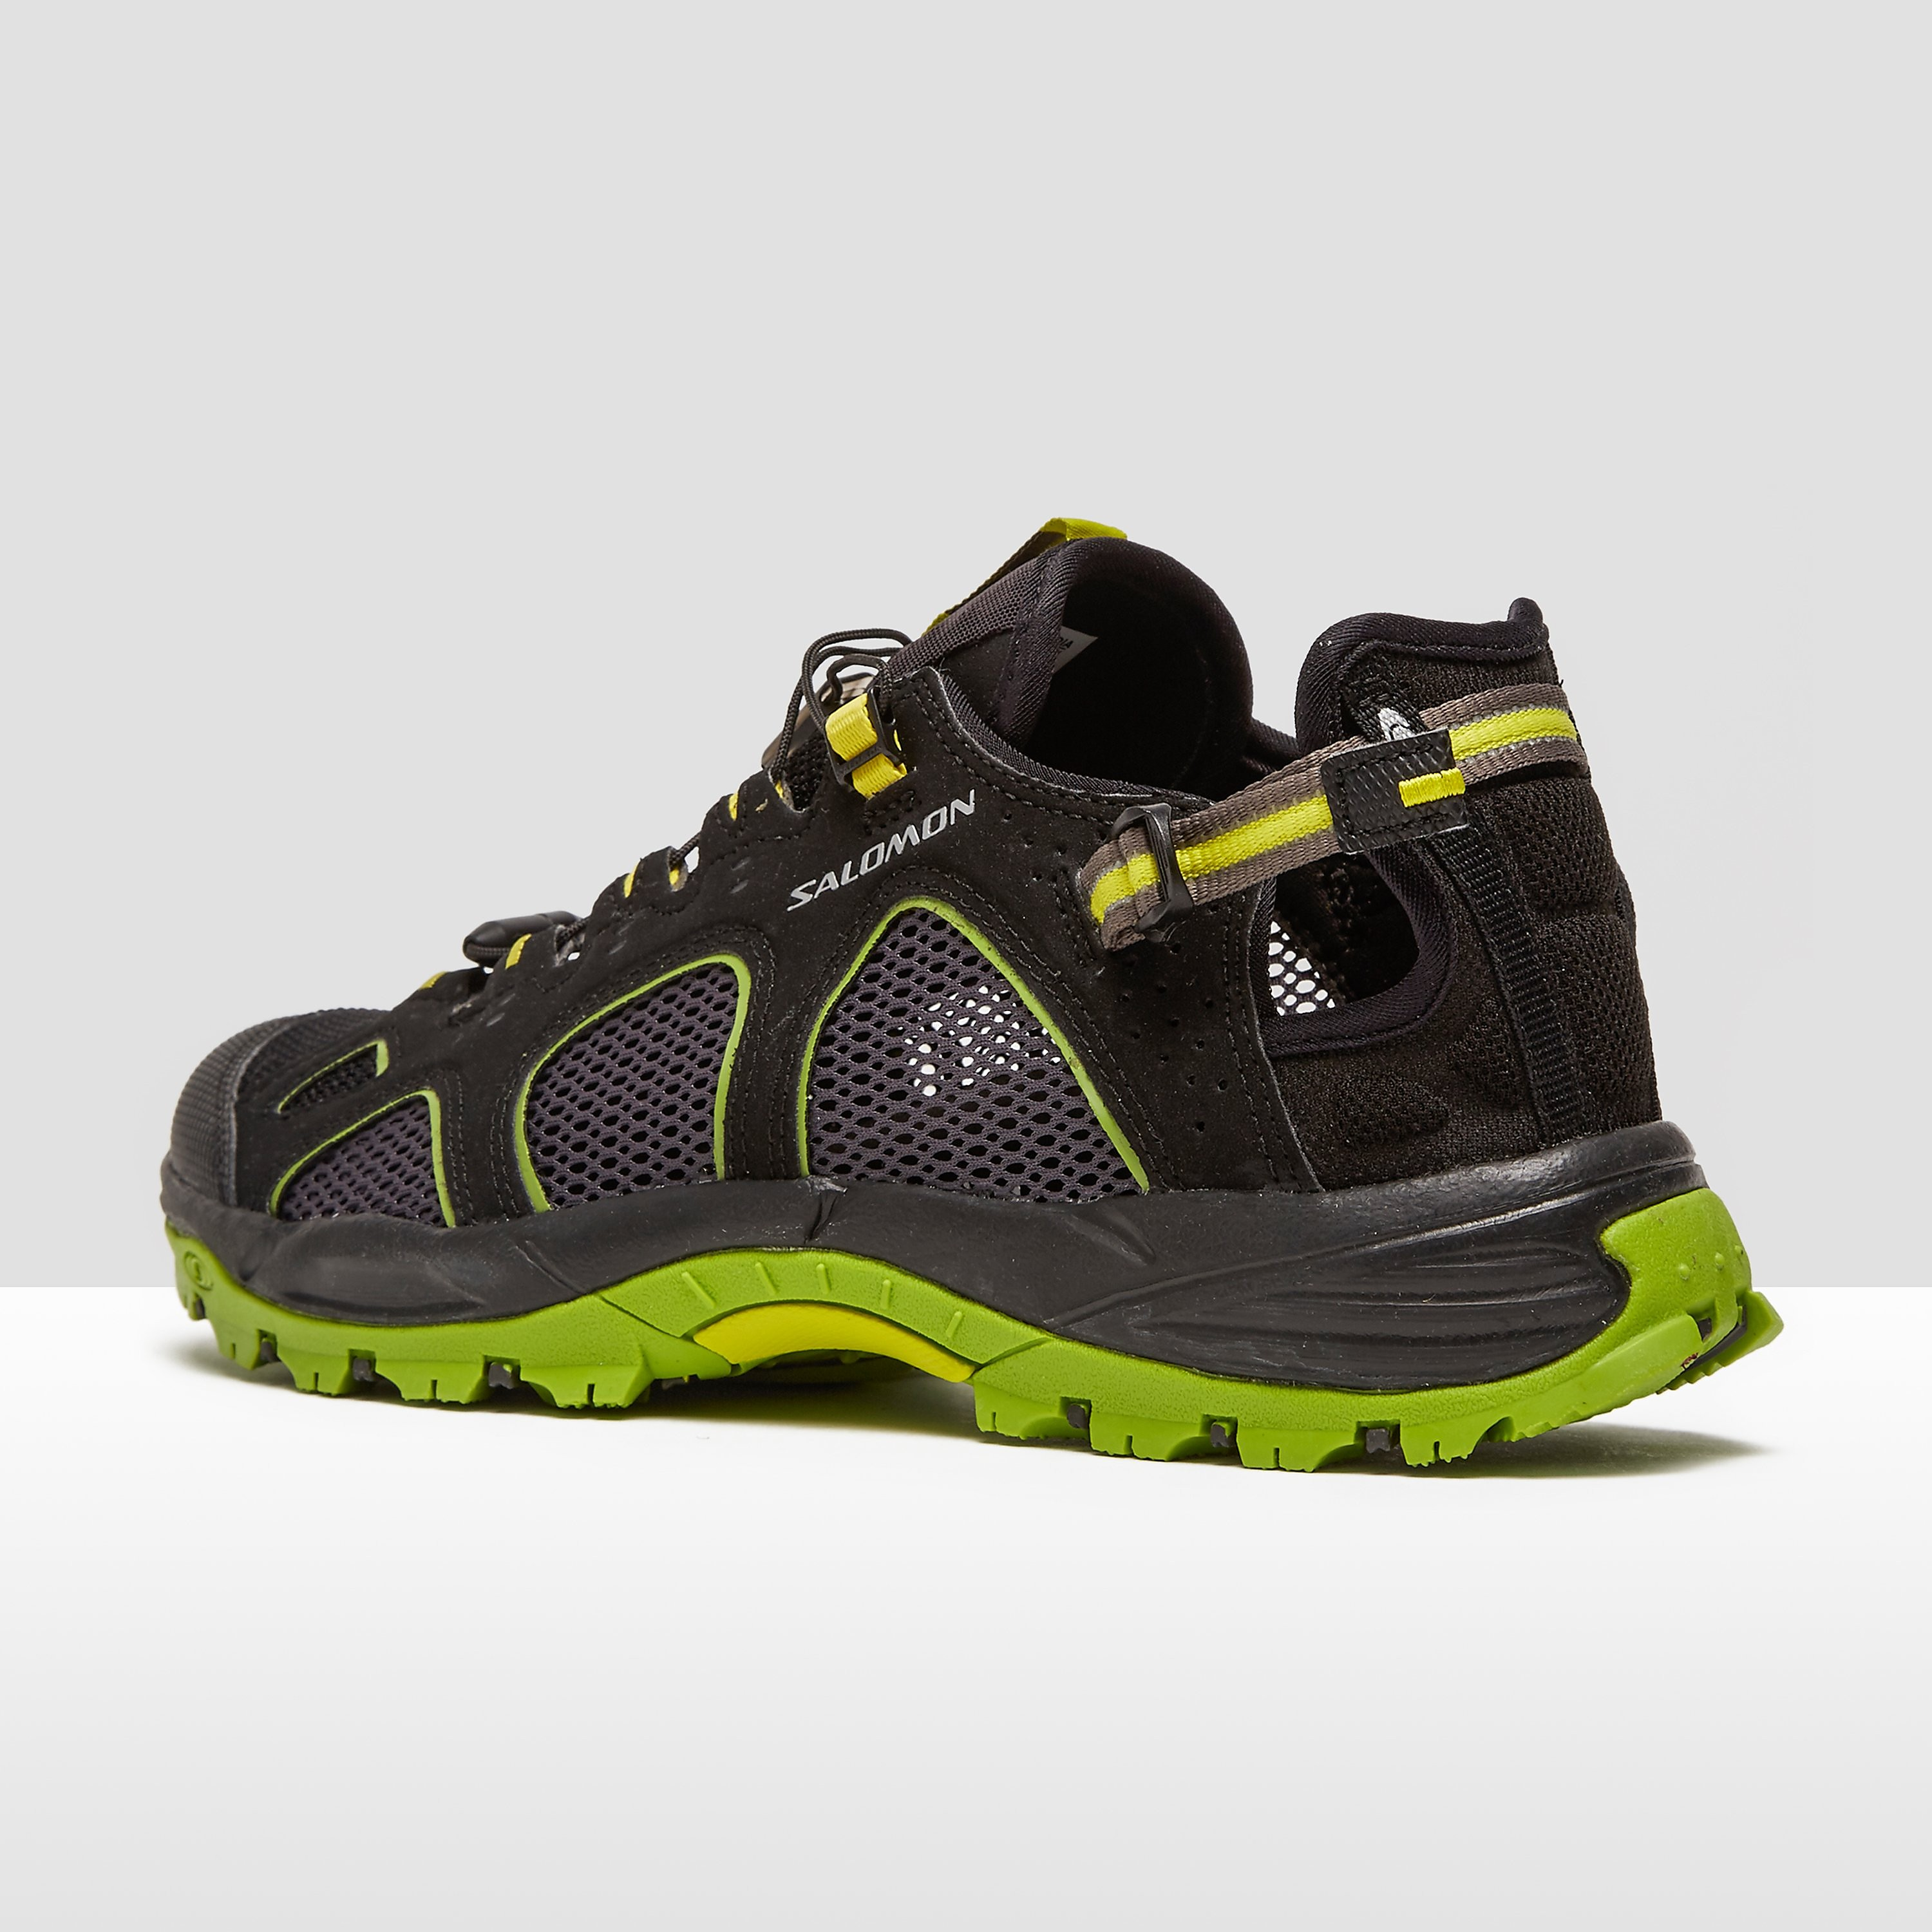 Salomon Techamphibian 3 Men's Water-Shedding Shoes